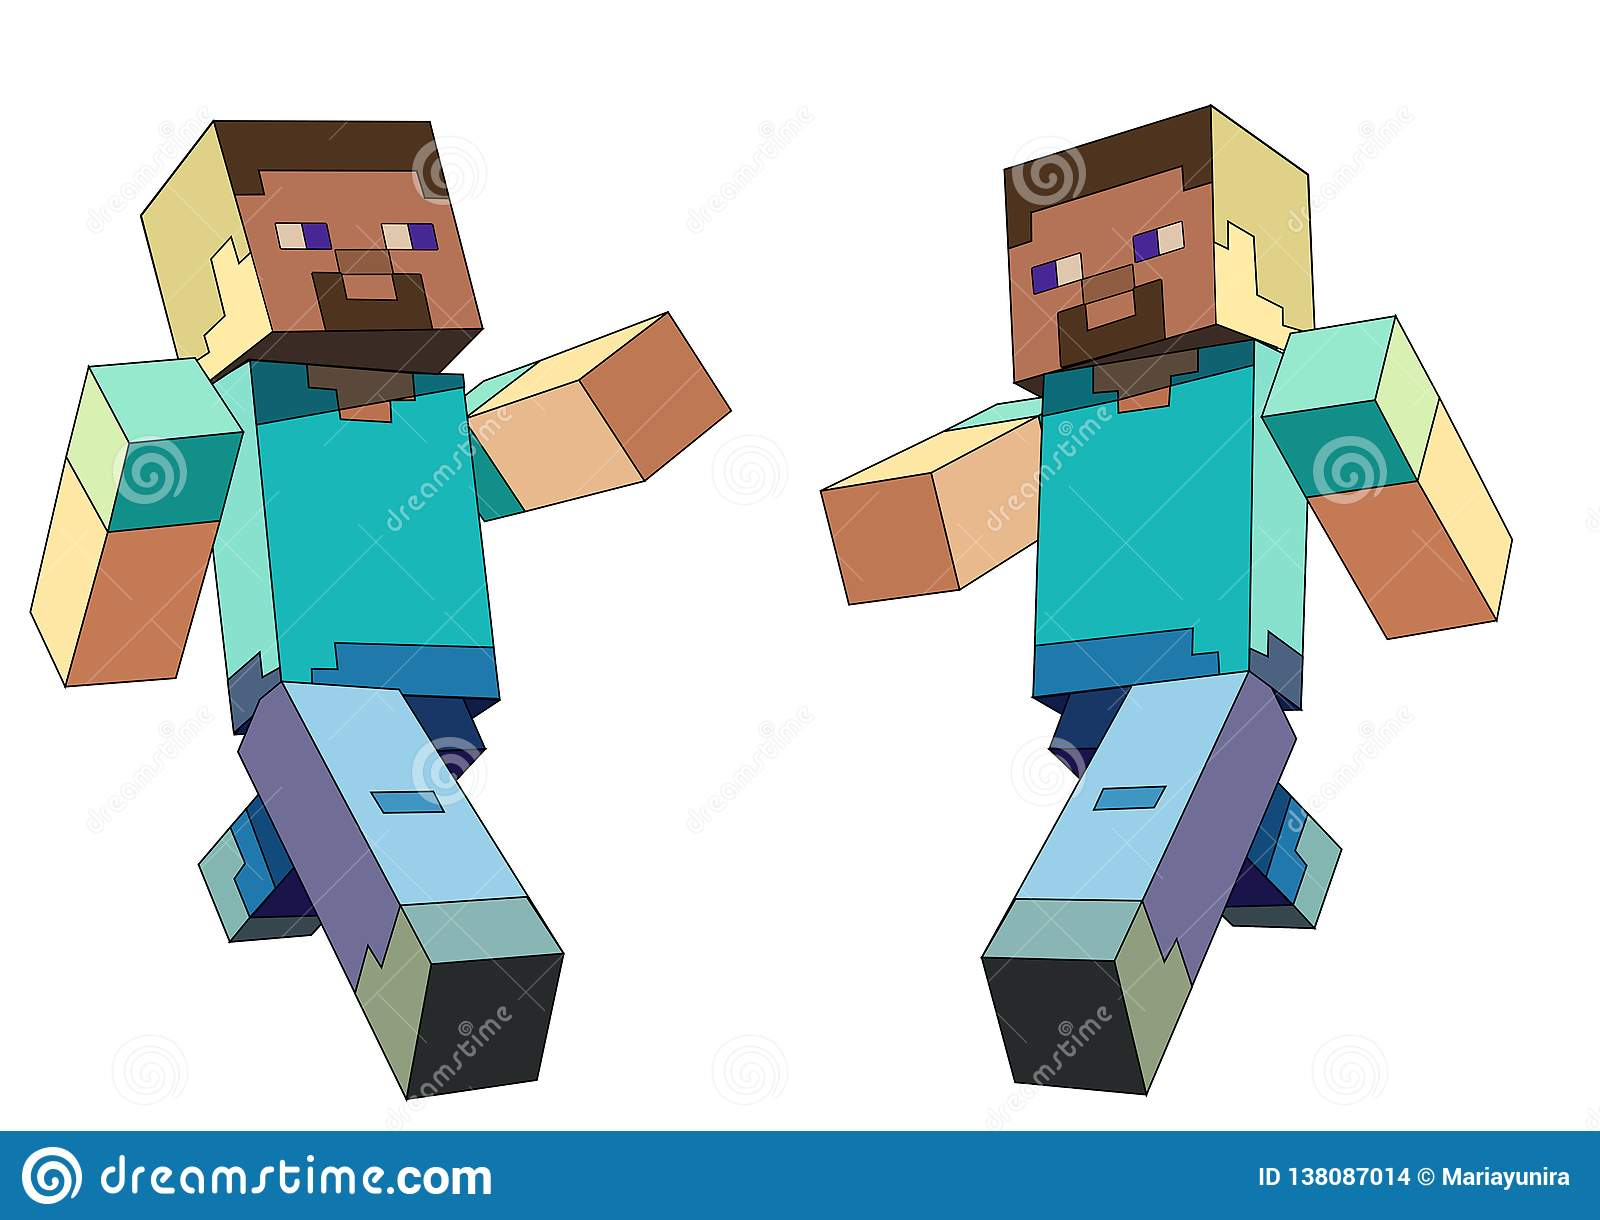 minecraft character editorial stock